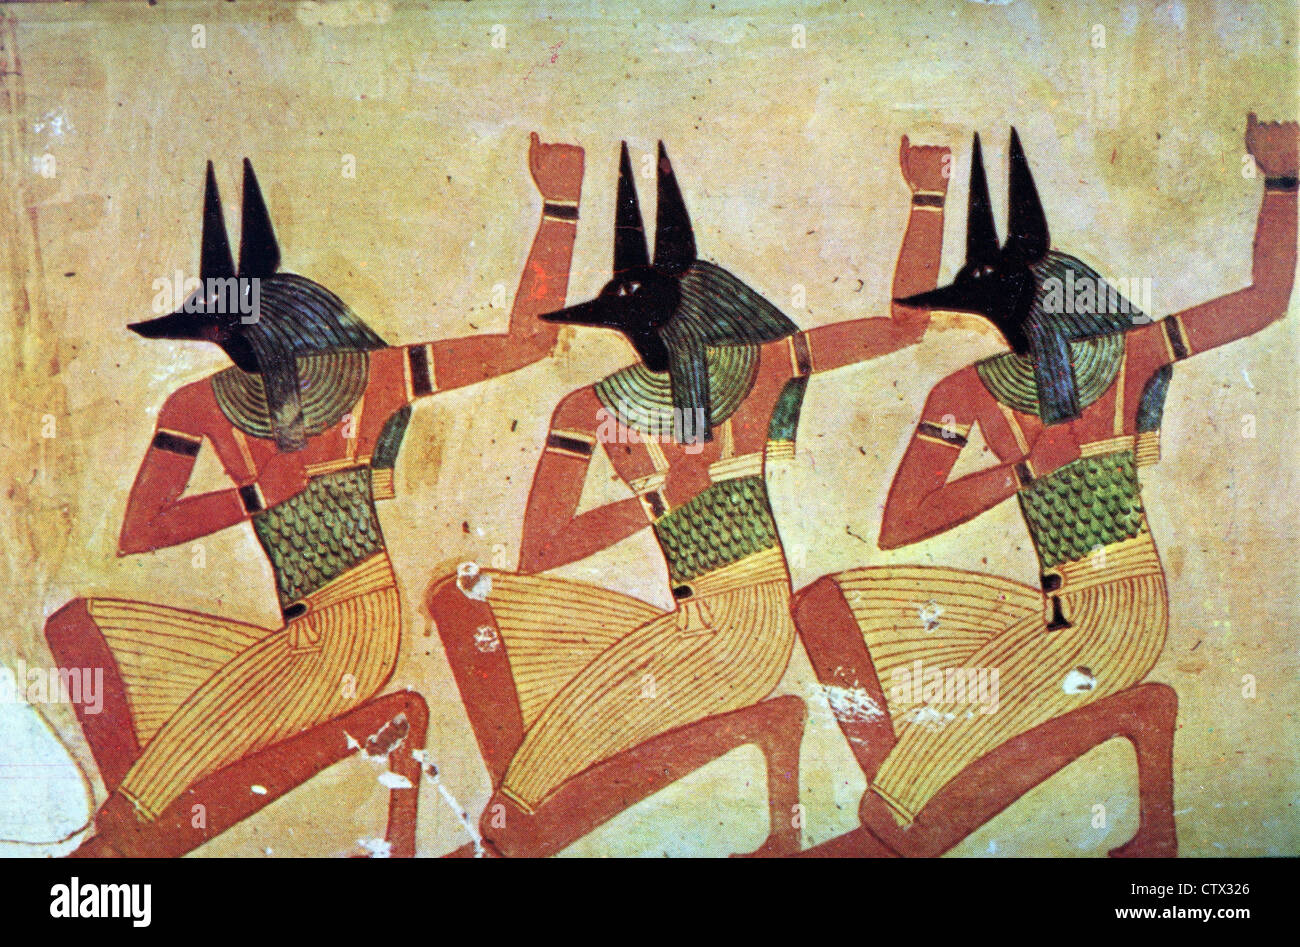 Art of of Anubis, the God with the jackal head in the tomb of Anherkhaou - Stock Image